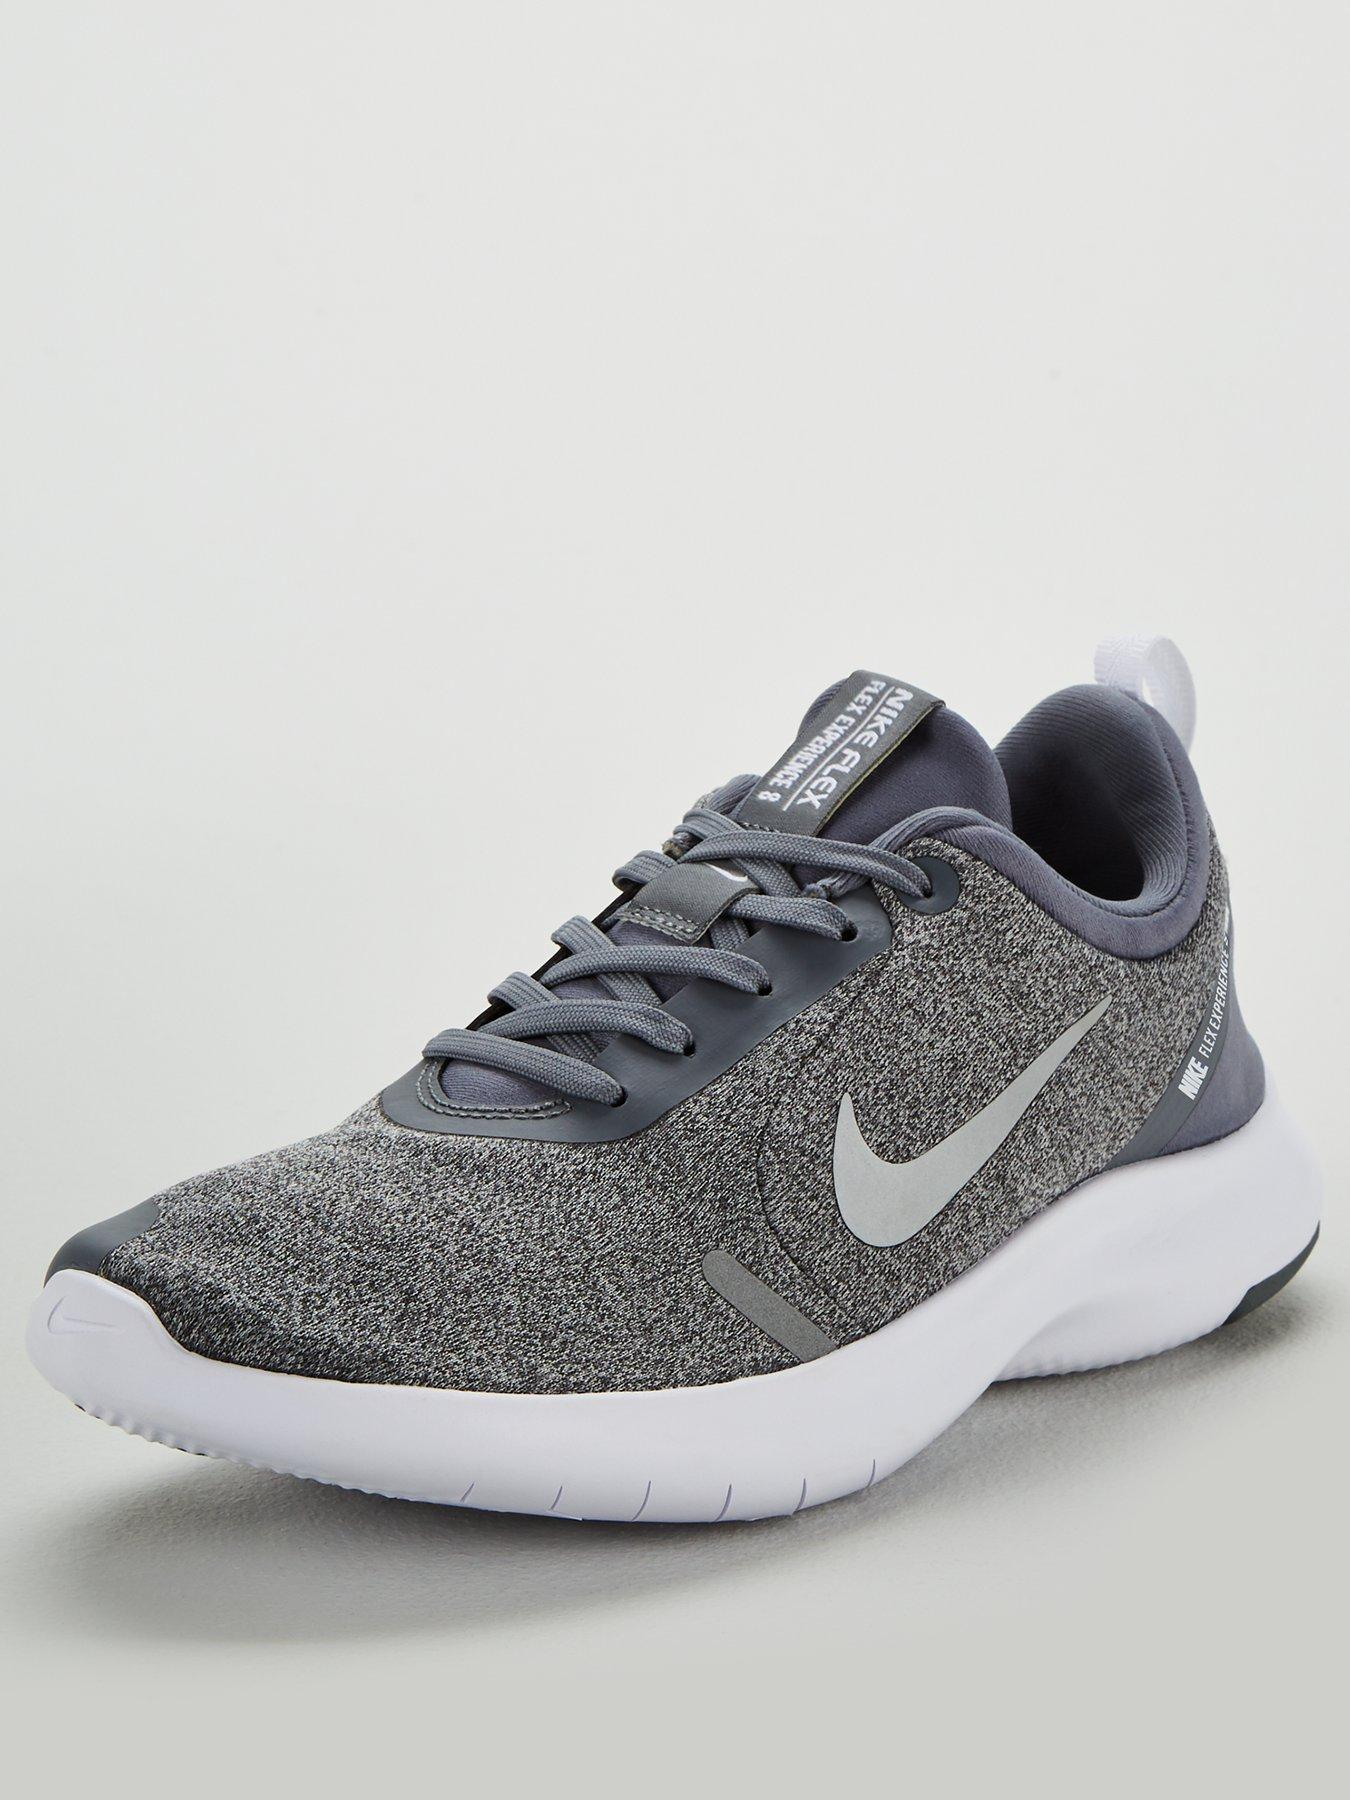 ca8c3c09d7af65 White And Grey Flex Nike Nike Flex Training Shoes